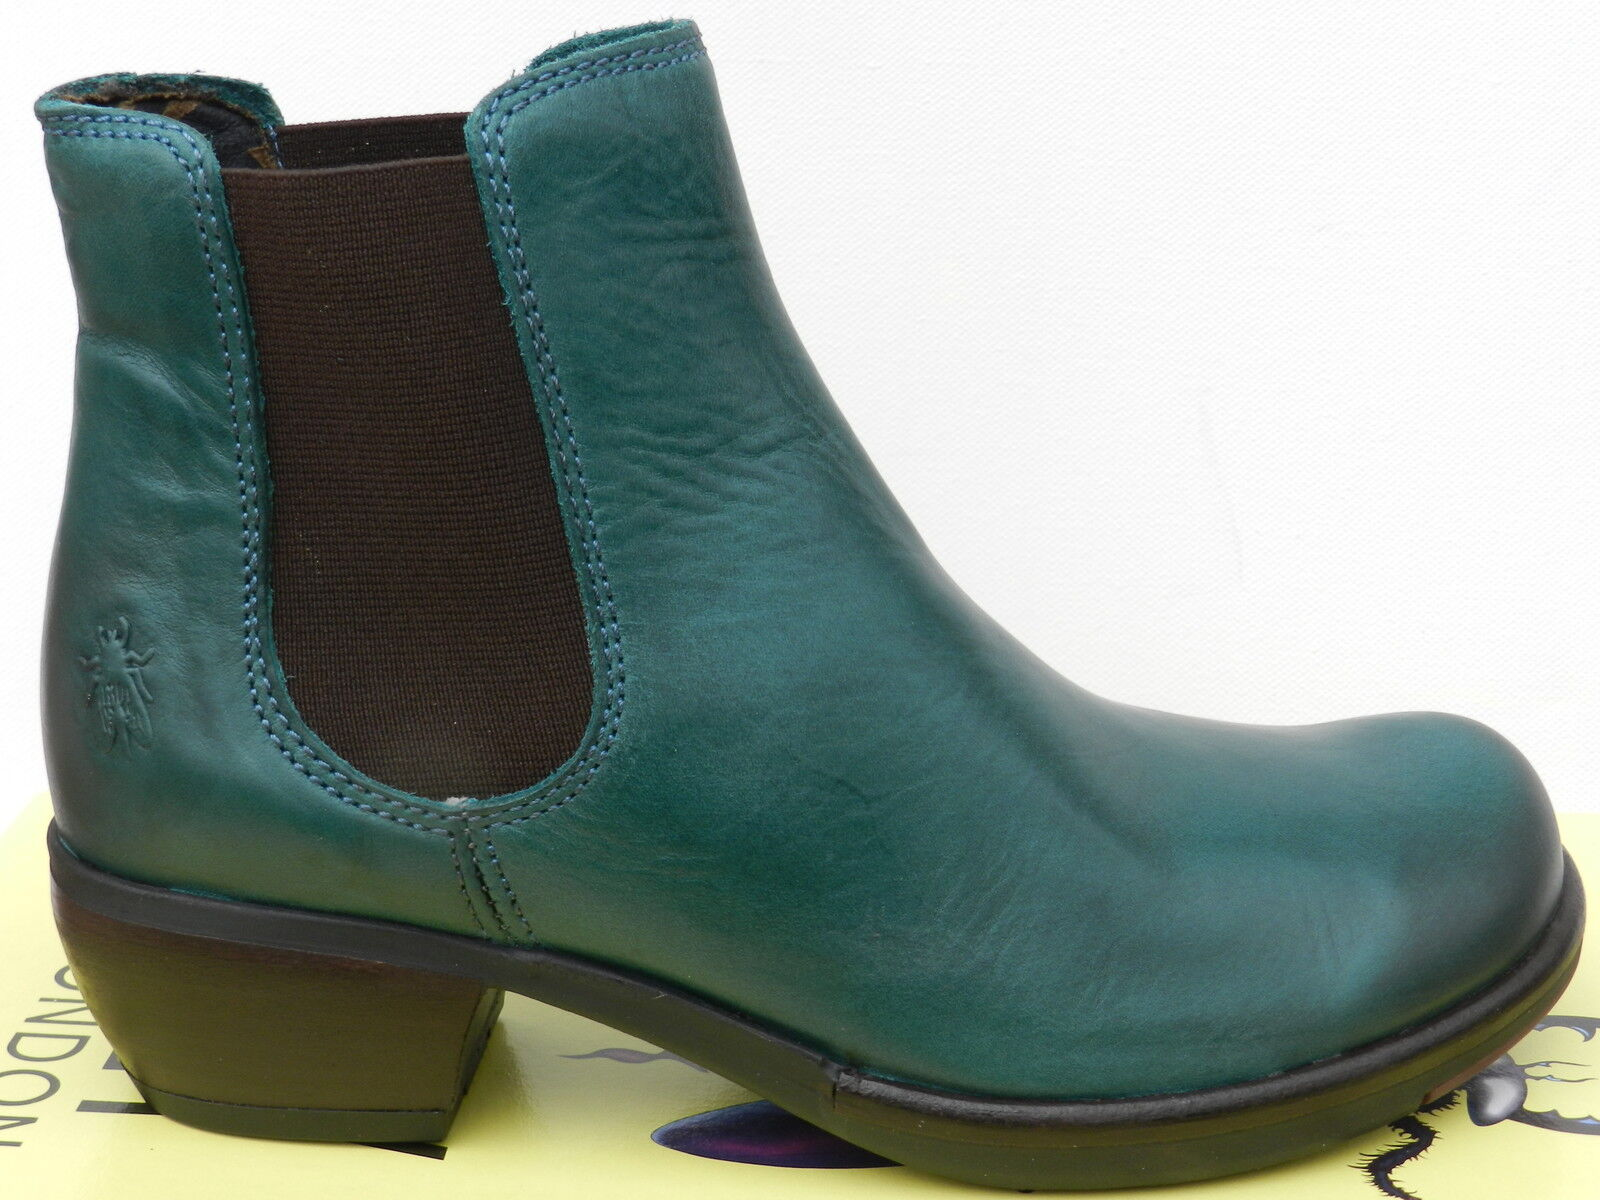 Fly Fly Fly London Make shoes Femme 40 Bottines Montantes Chelsea Boots Mel UK7 New 1a6339